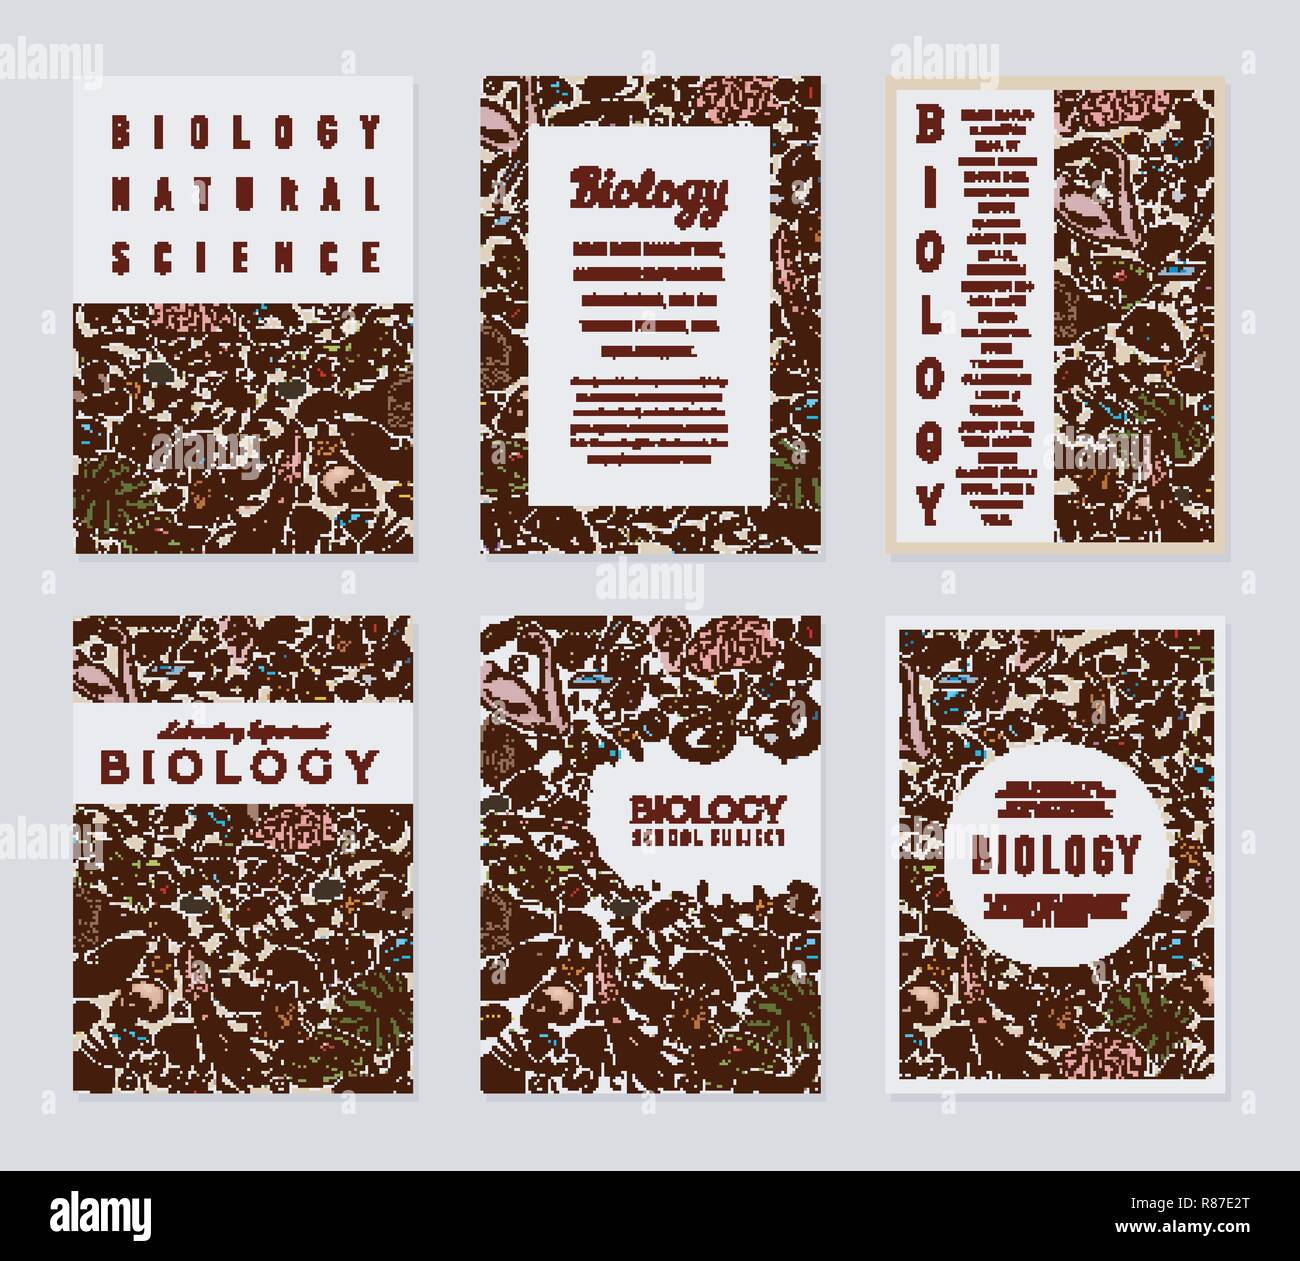 biology cards science templates and banners poster for book print